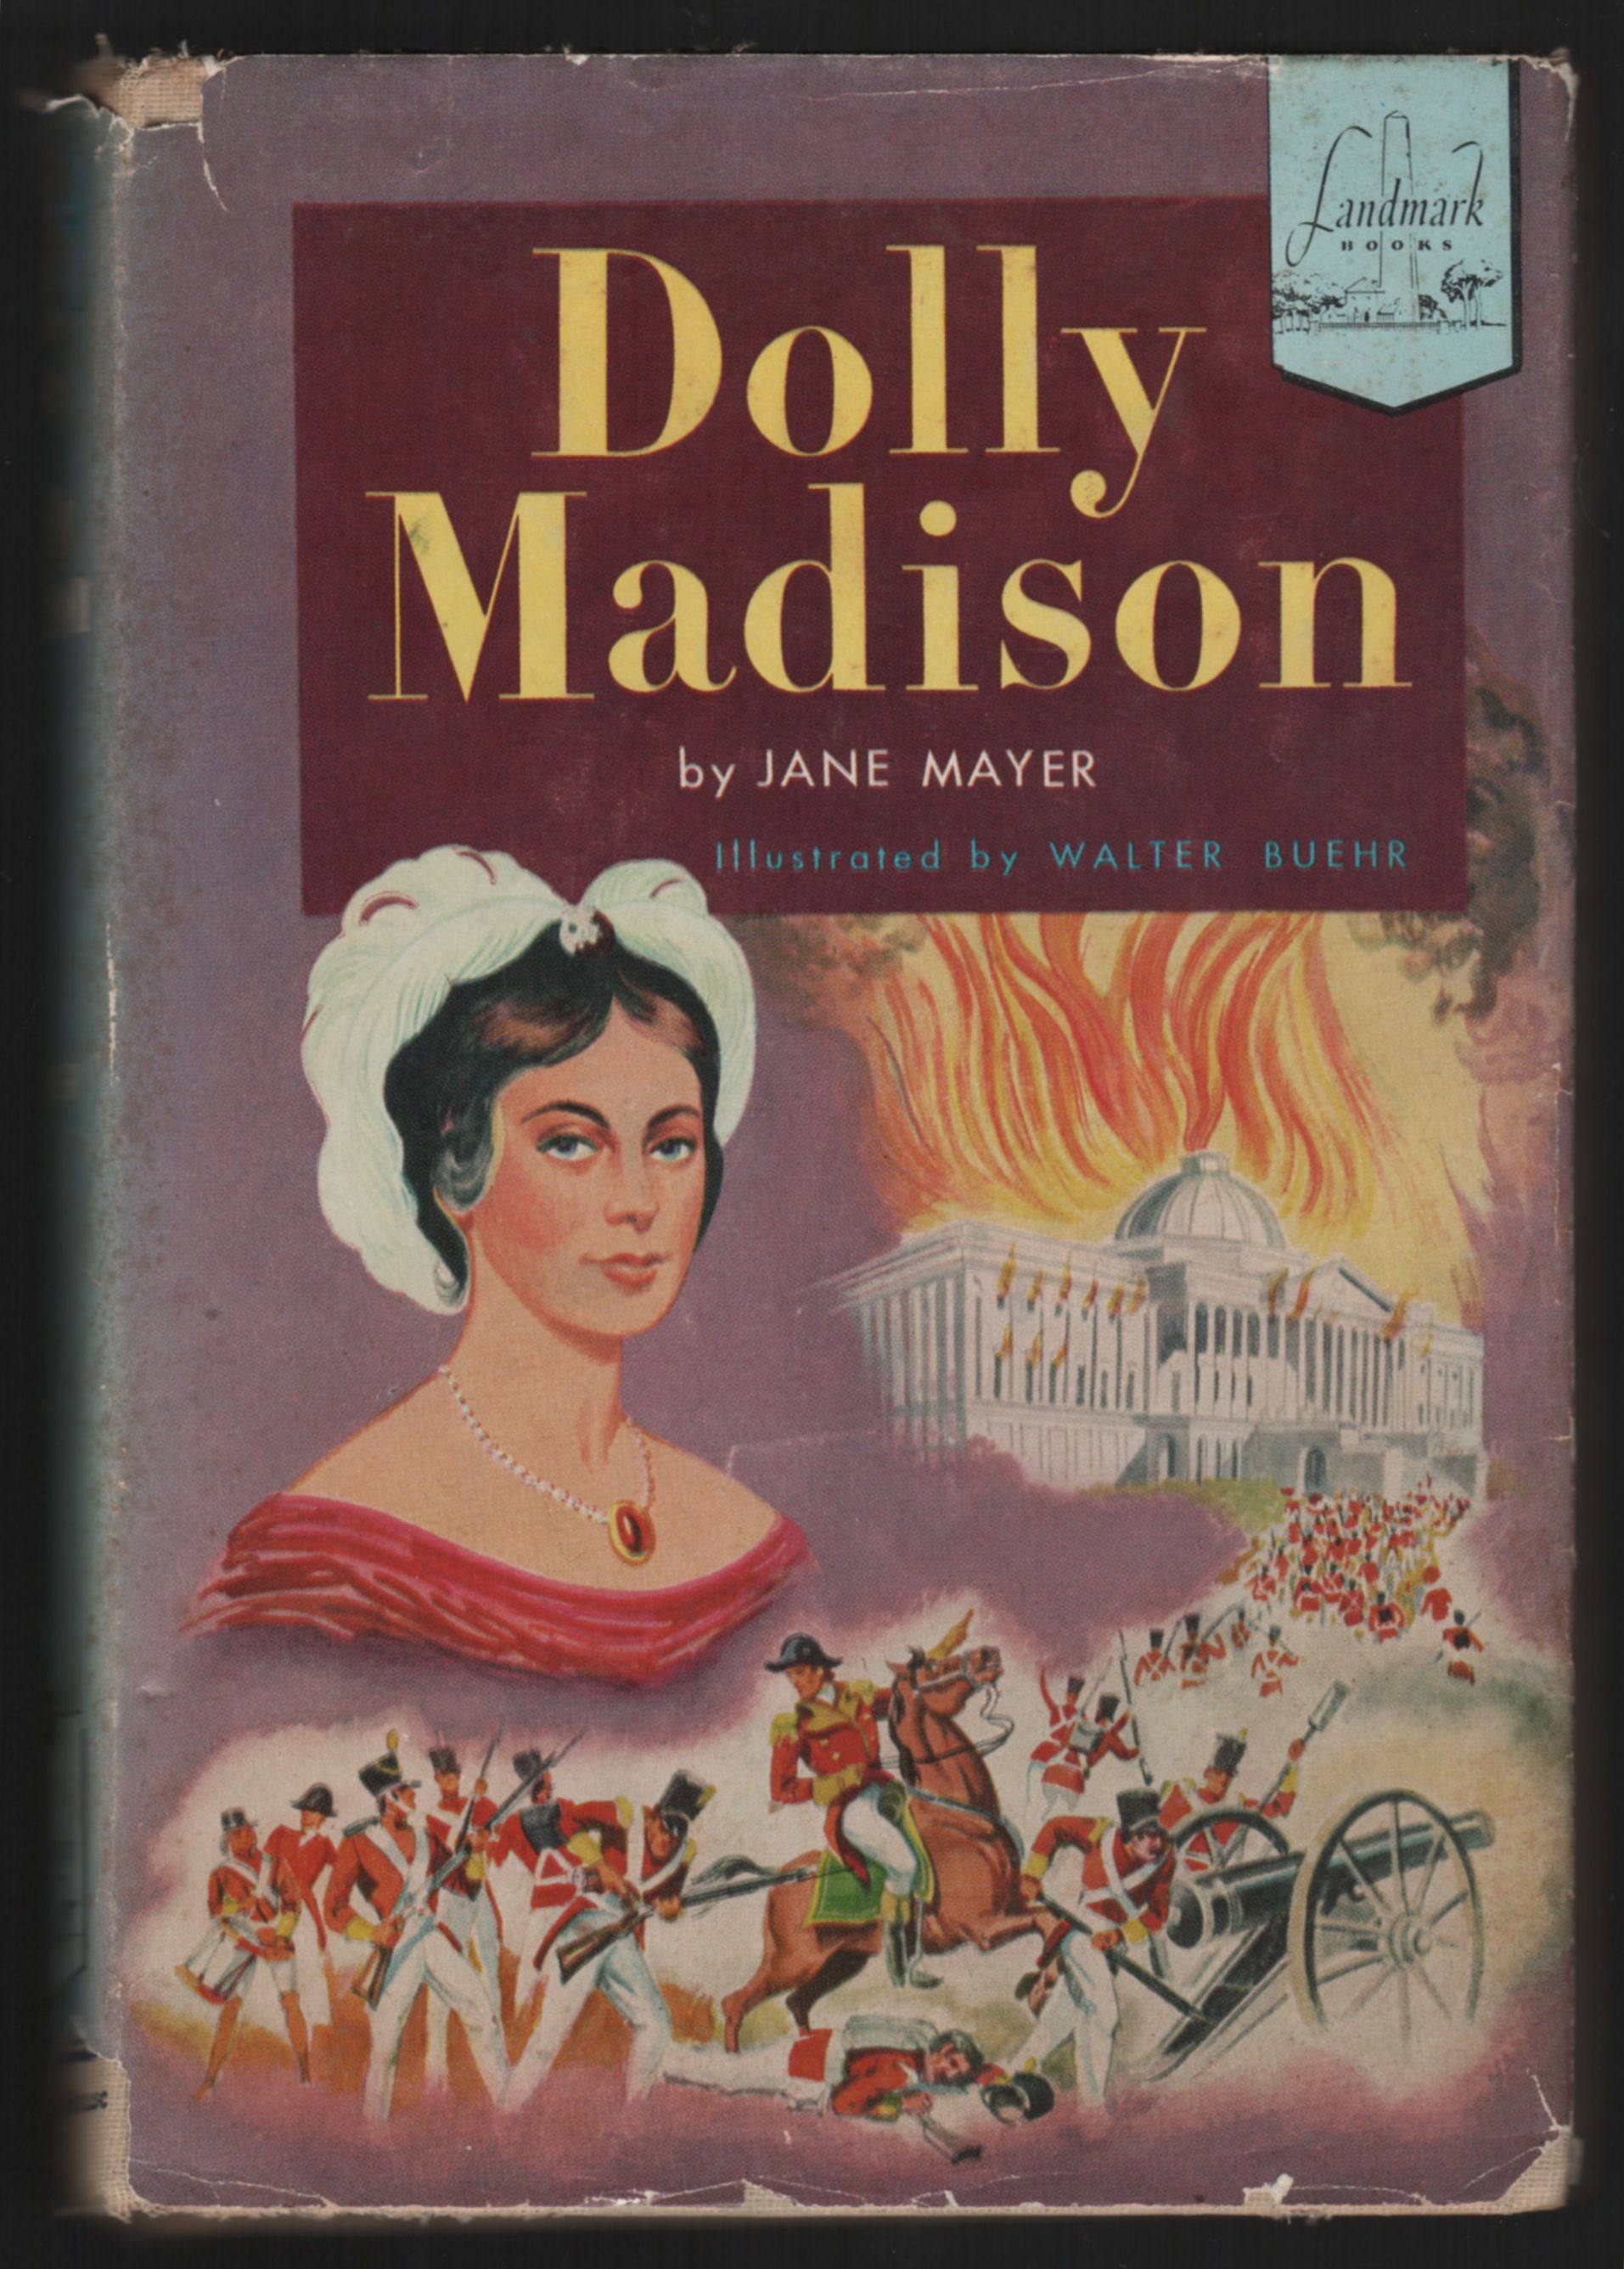 Dolly Madison By Jane Mayer Illustrated By Walter Buehr 1954 Landmark Edition Exodus Book Madison Books